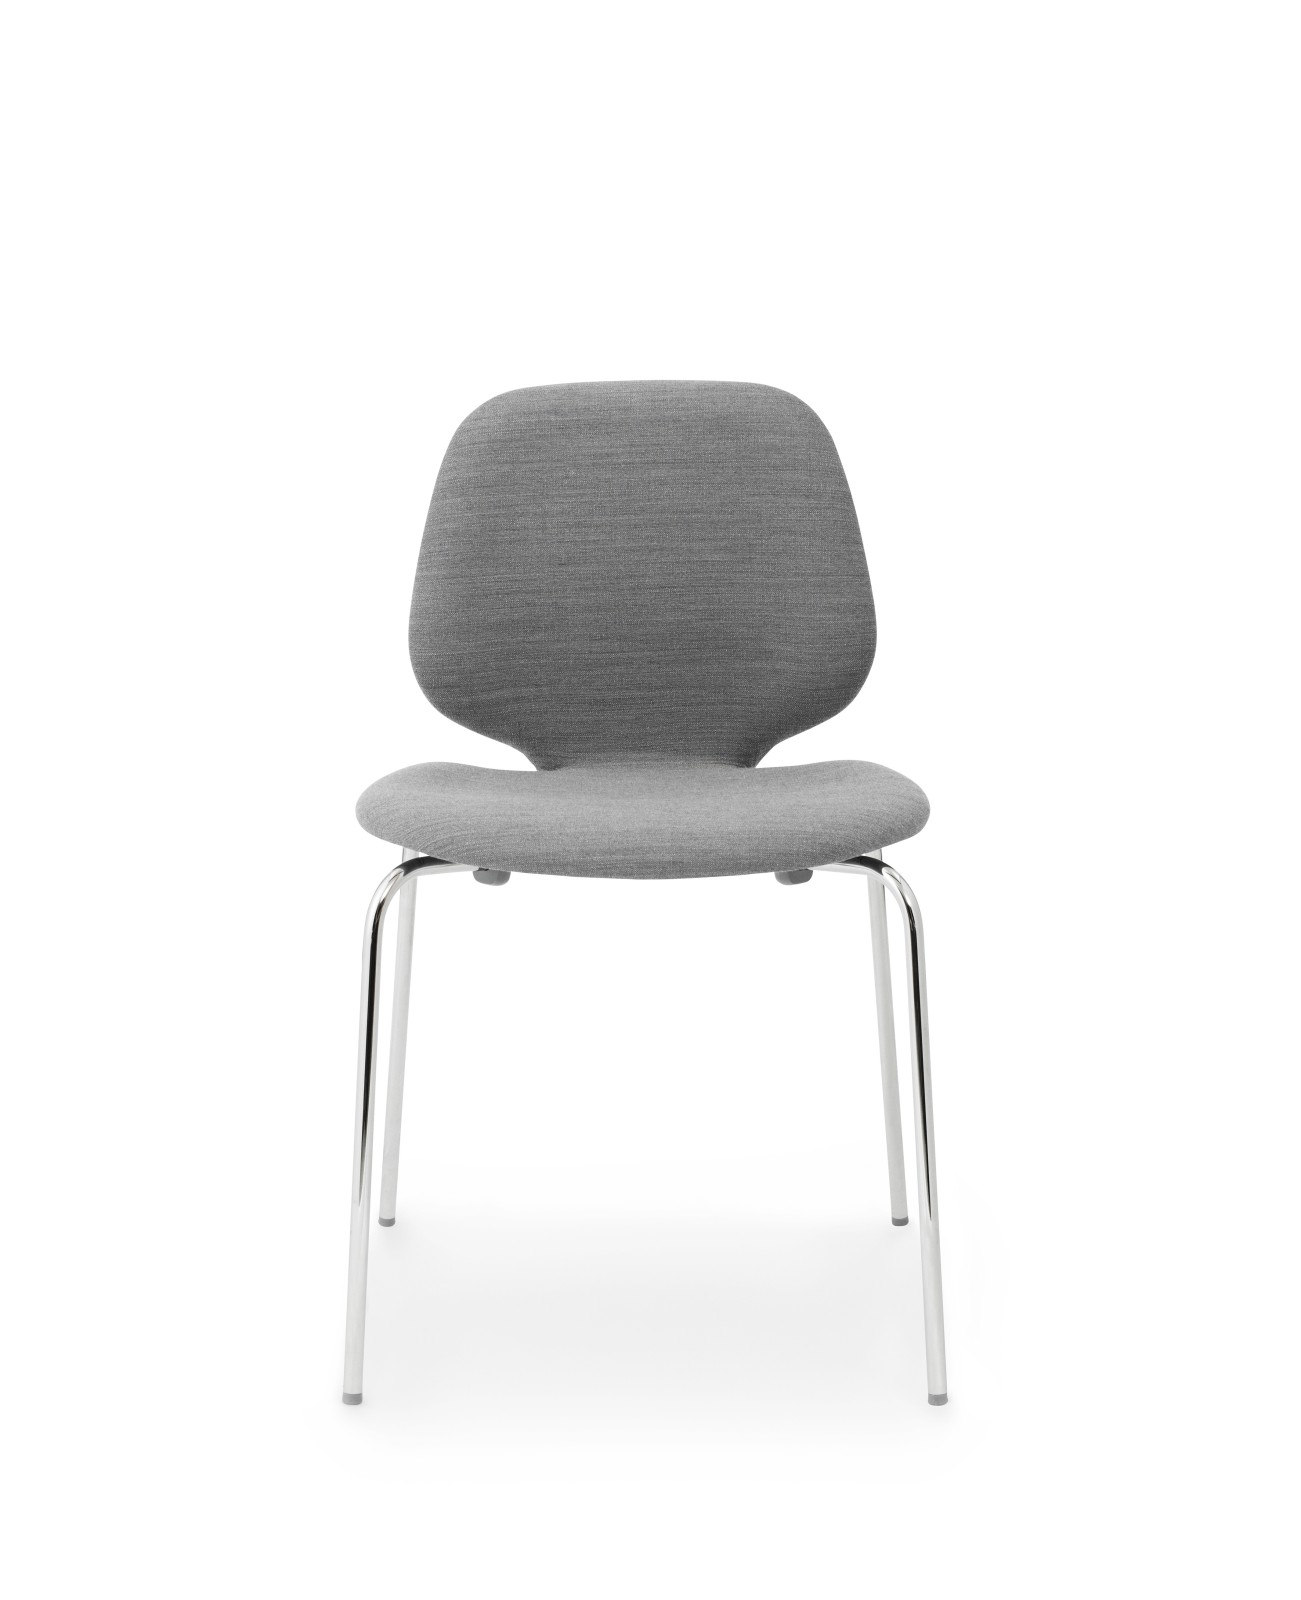 My Chair Upholstered Fame 60005, Silver